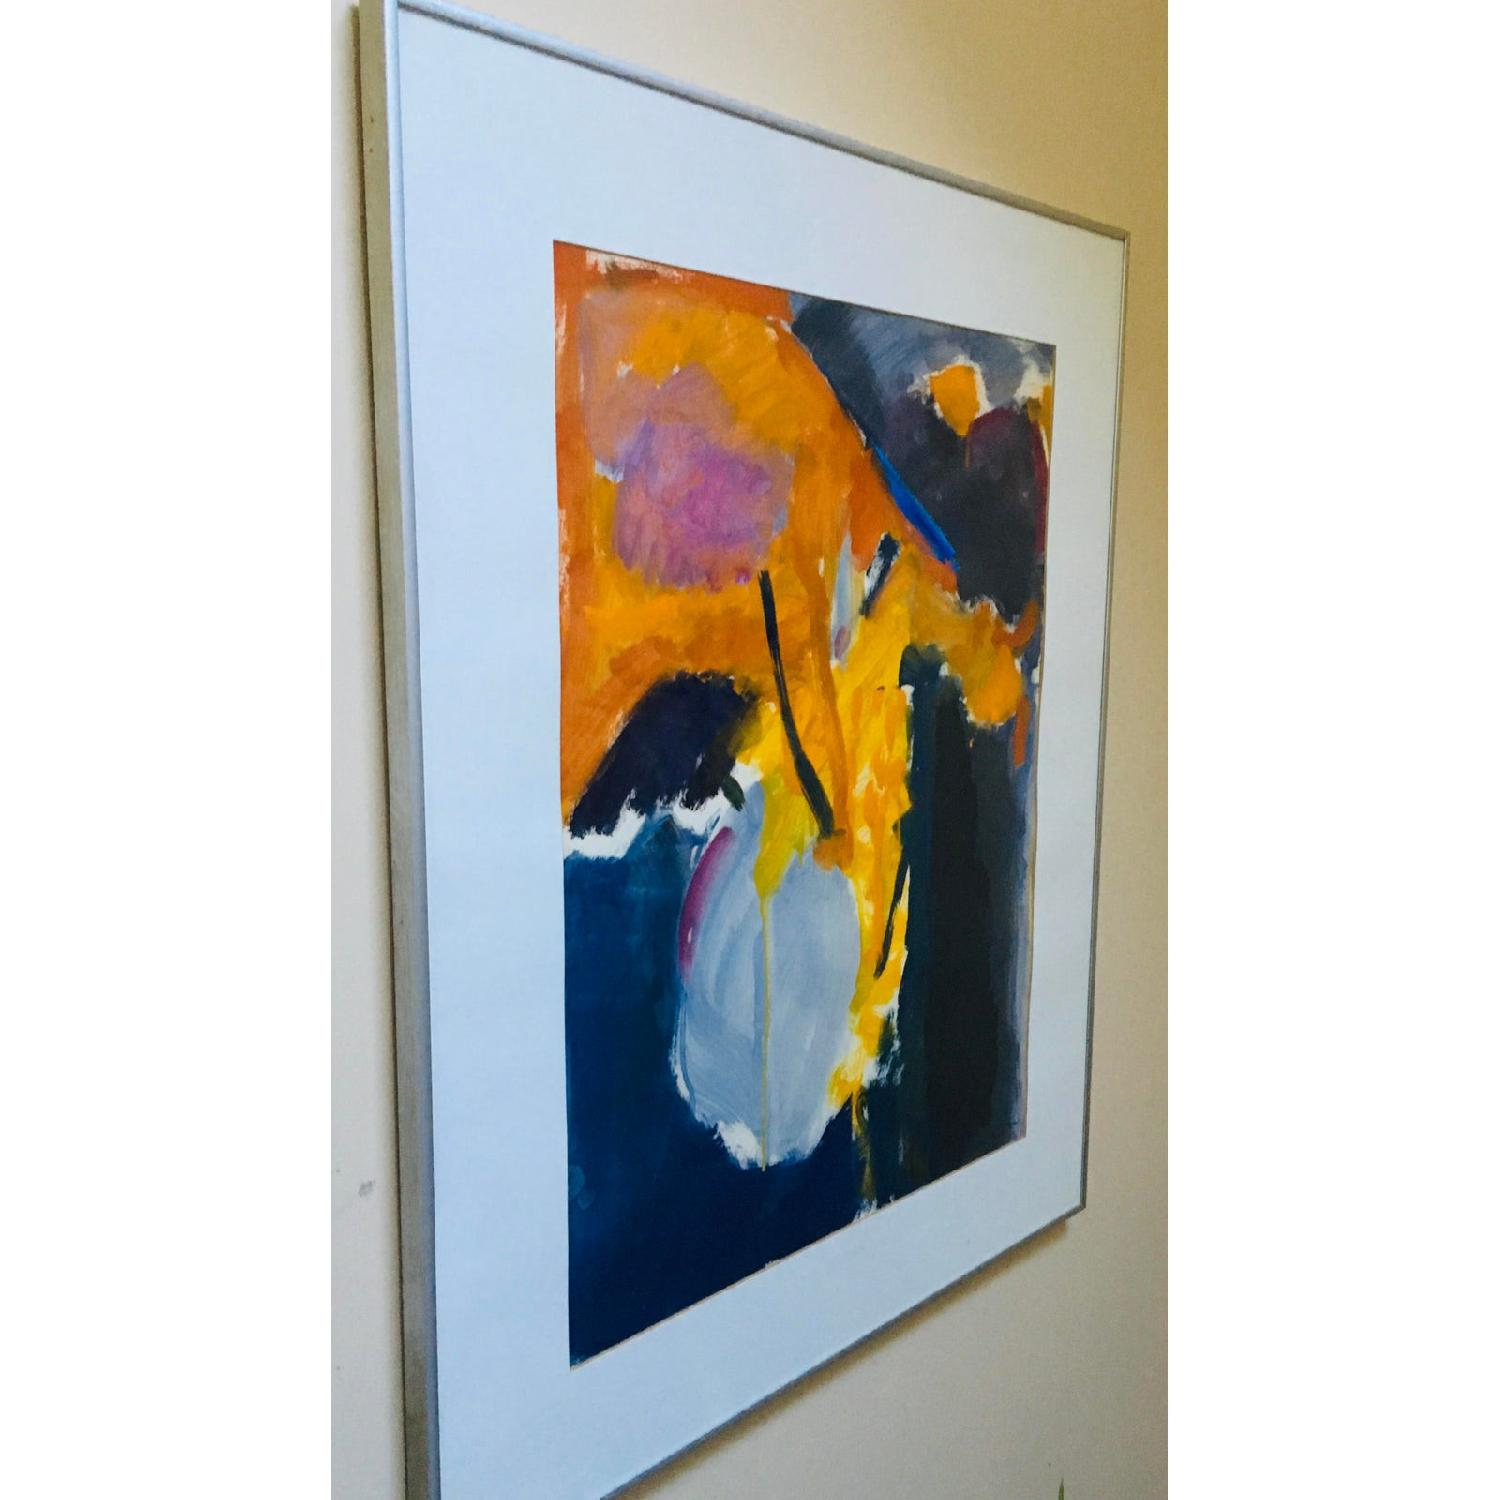 1980s Gray Vase Abstract Expressionist Still Life Painting - image-3